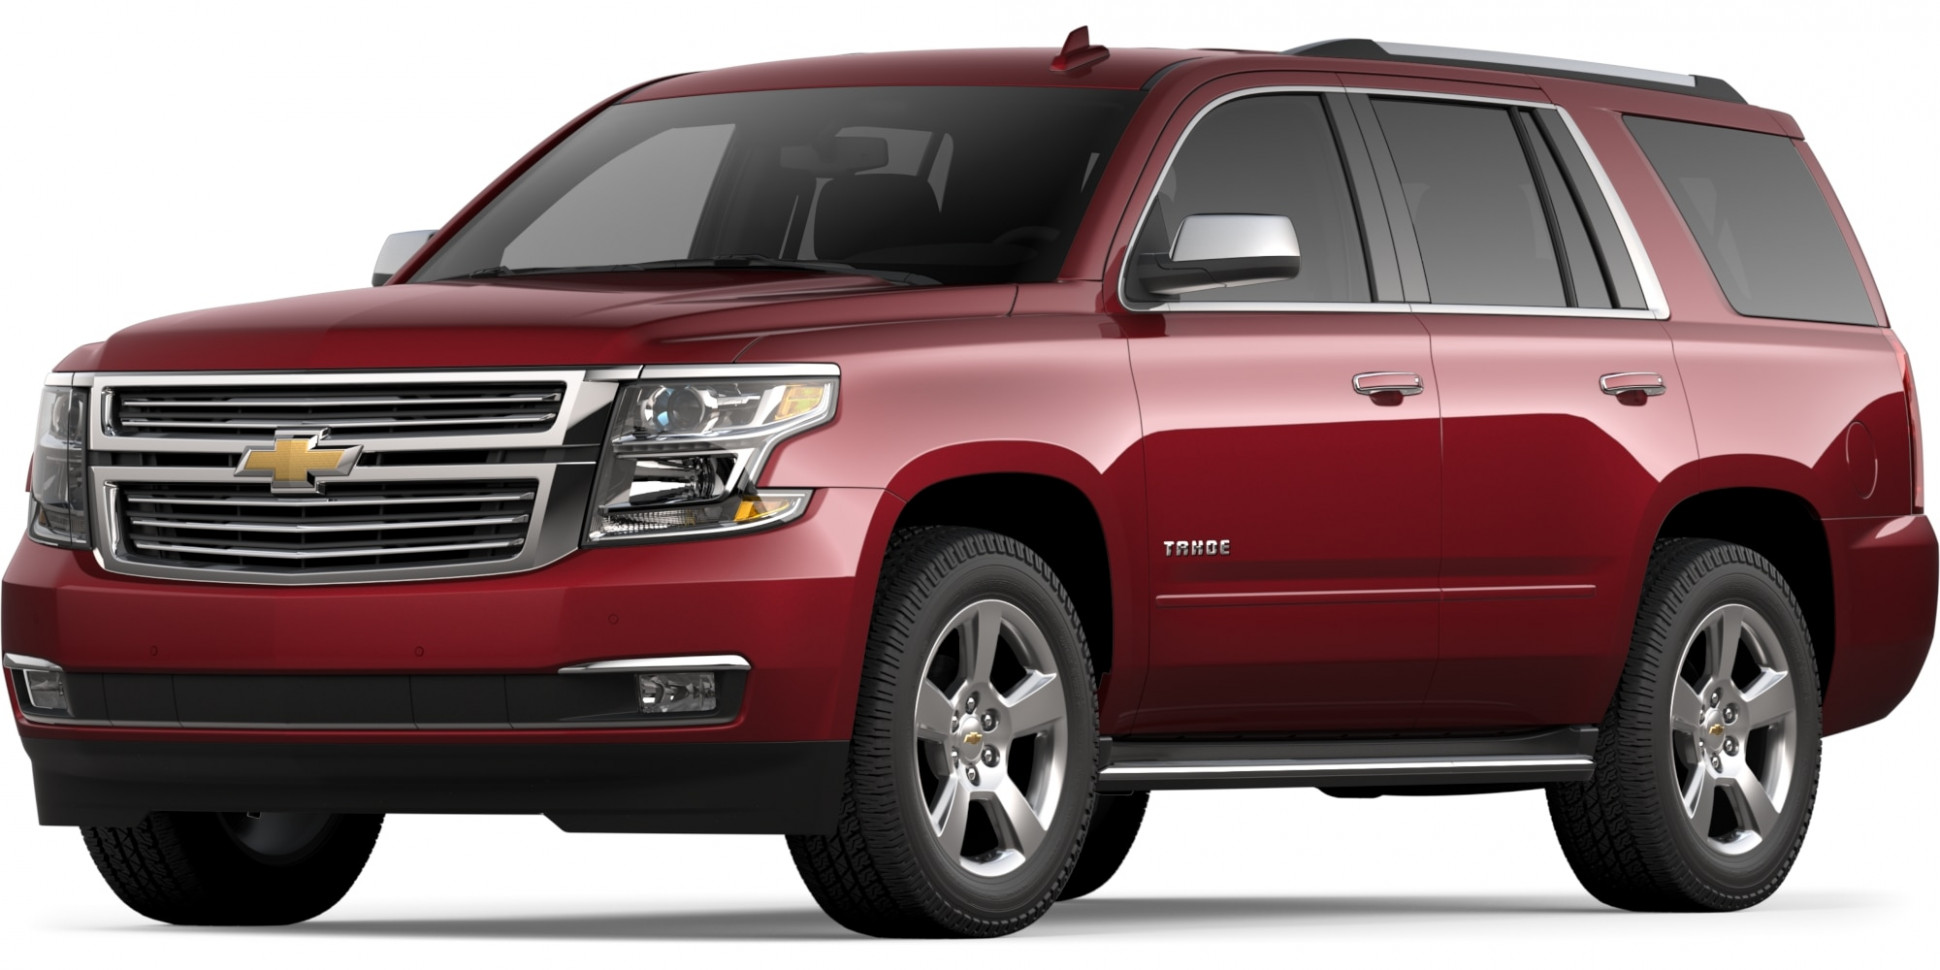 11 Chevy Tahoe | Full-Size SUV, 11-Row SUV, 11-11 Seater SUV